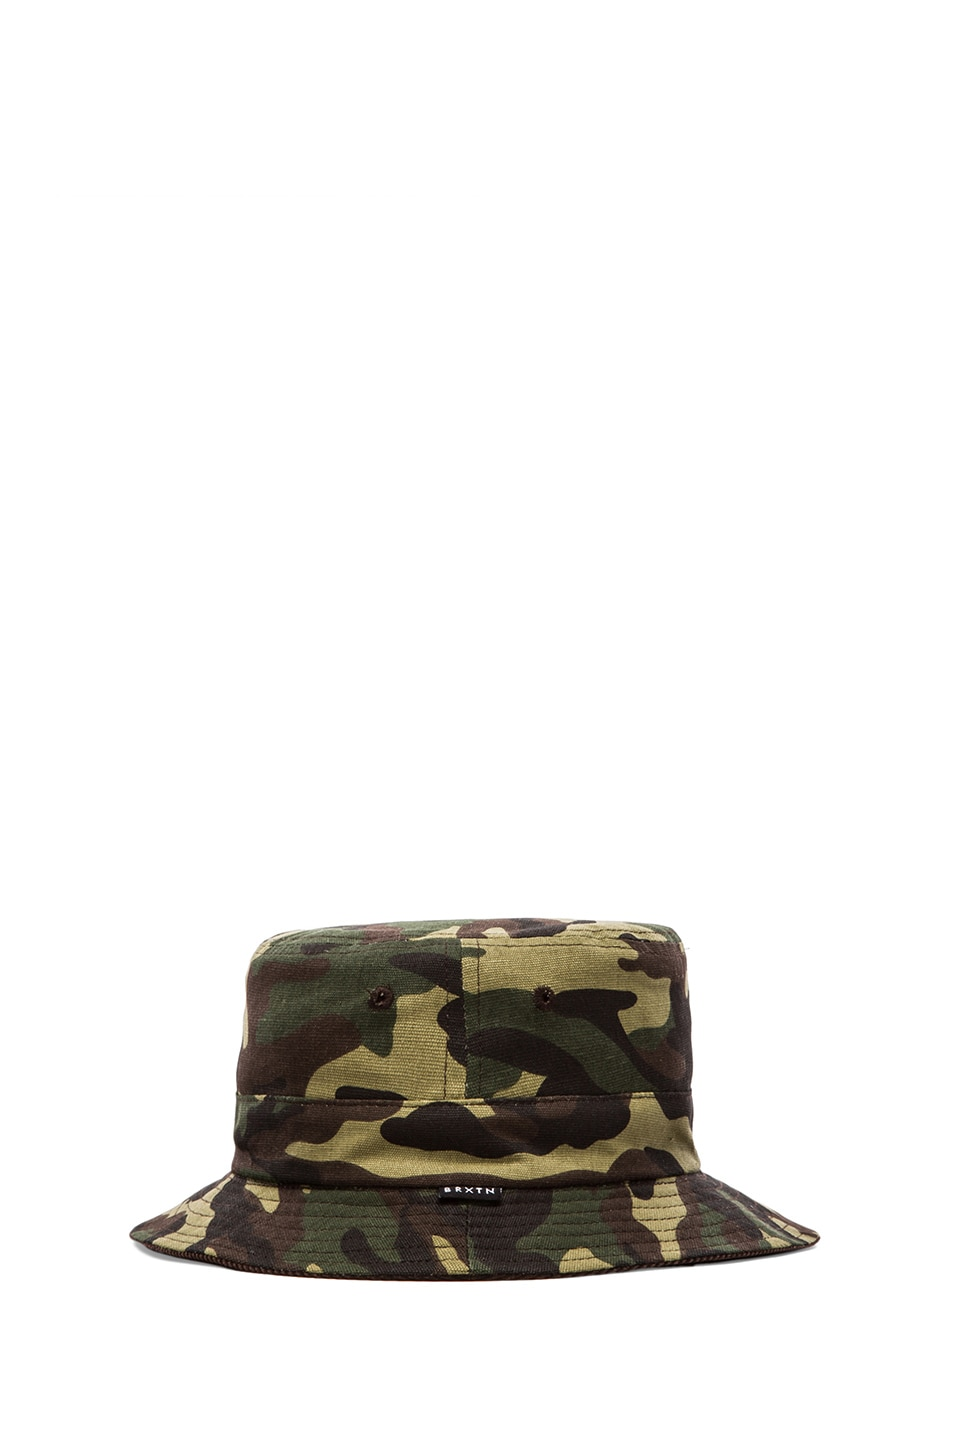 Brixton Tull Reversible Bucket Hat in Brown/ Camo